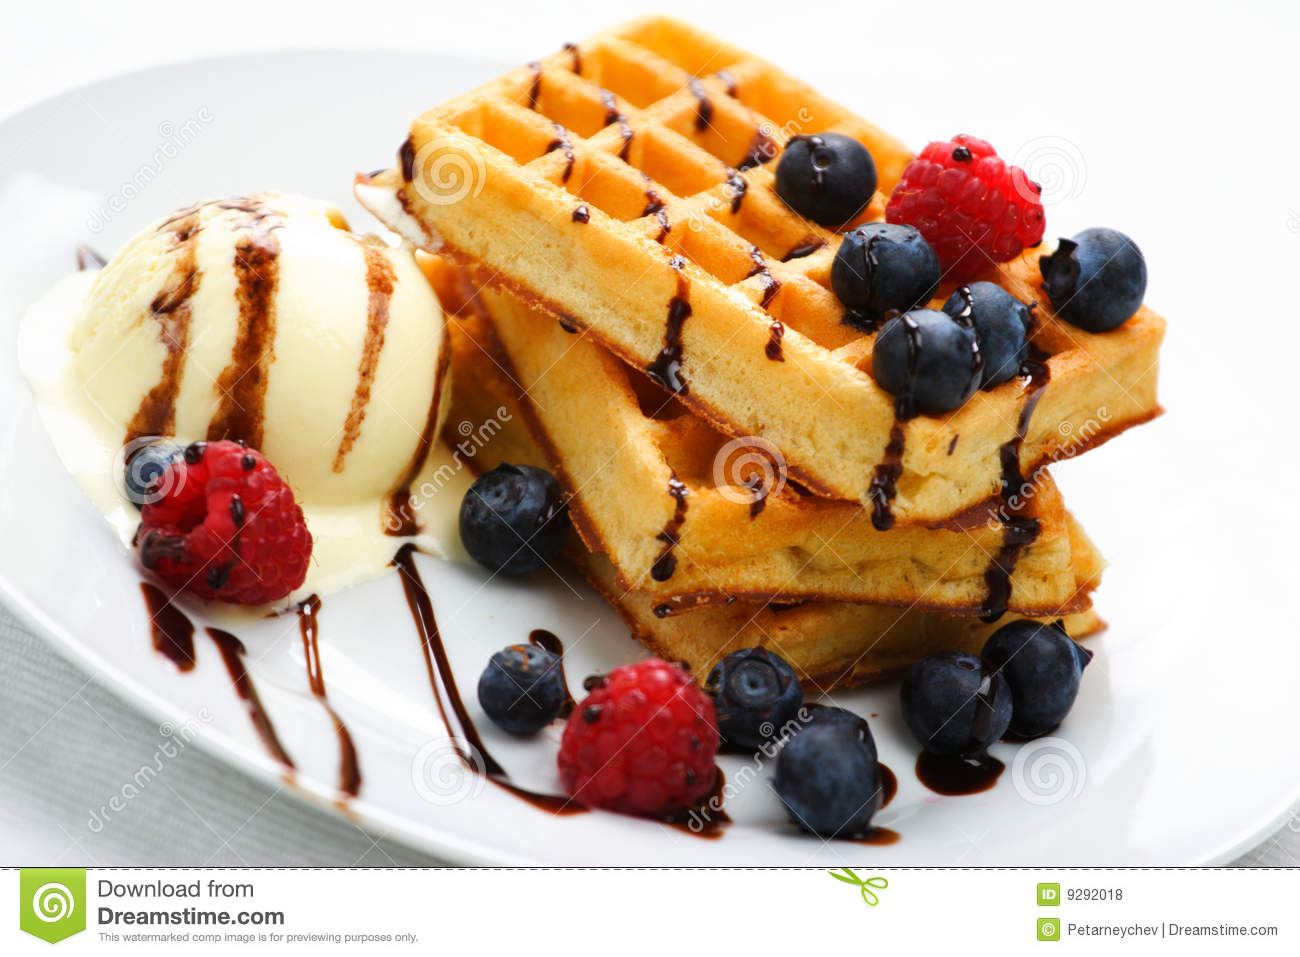 Stylish Dessert With Waffles Royalty Free Stock Photos ...